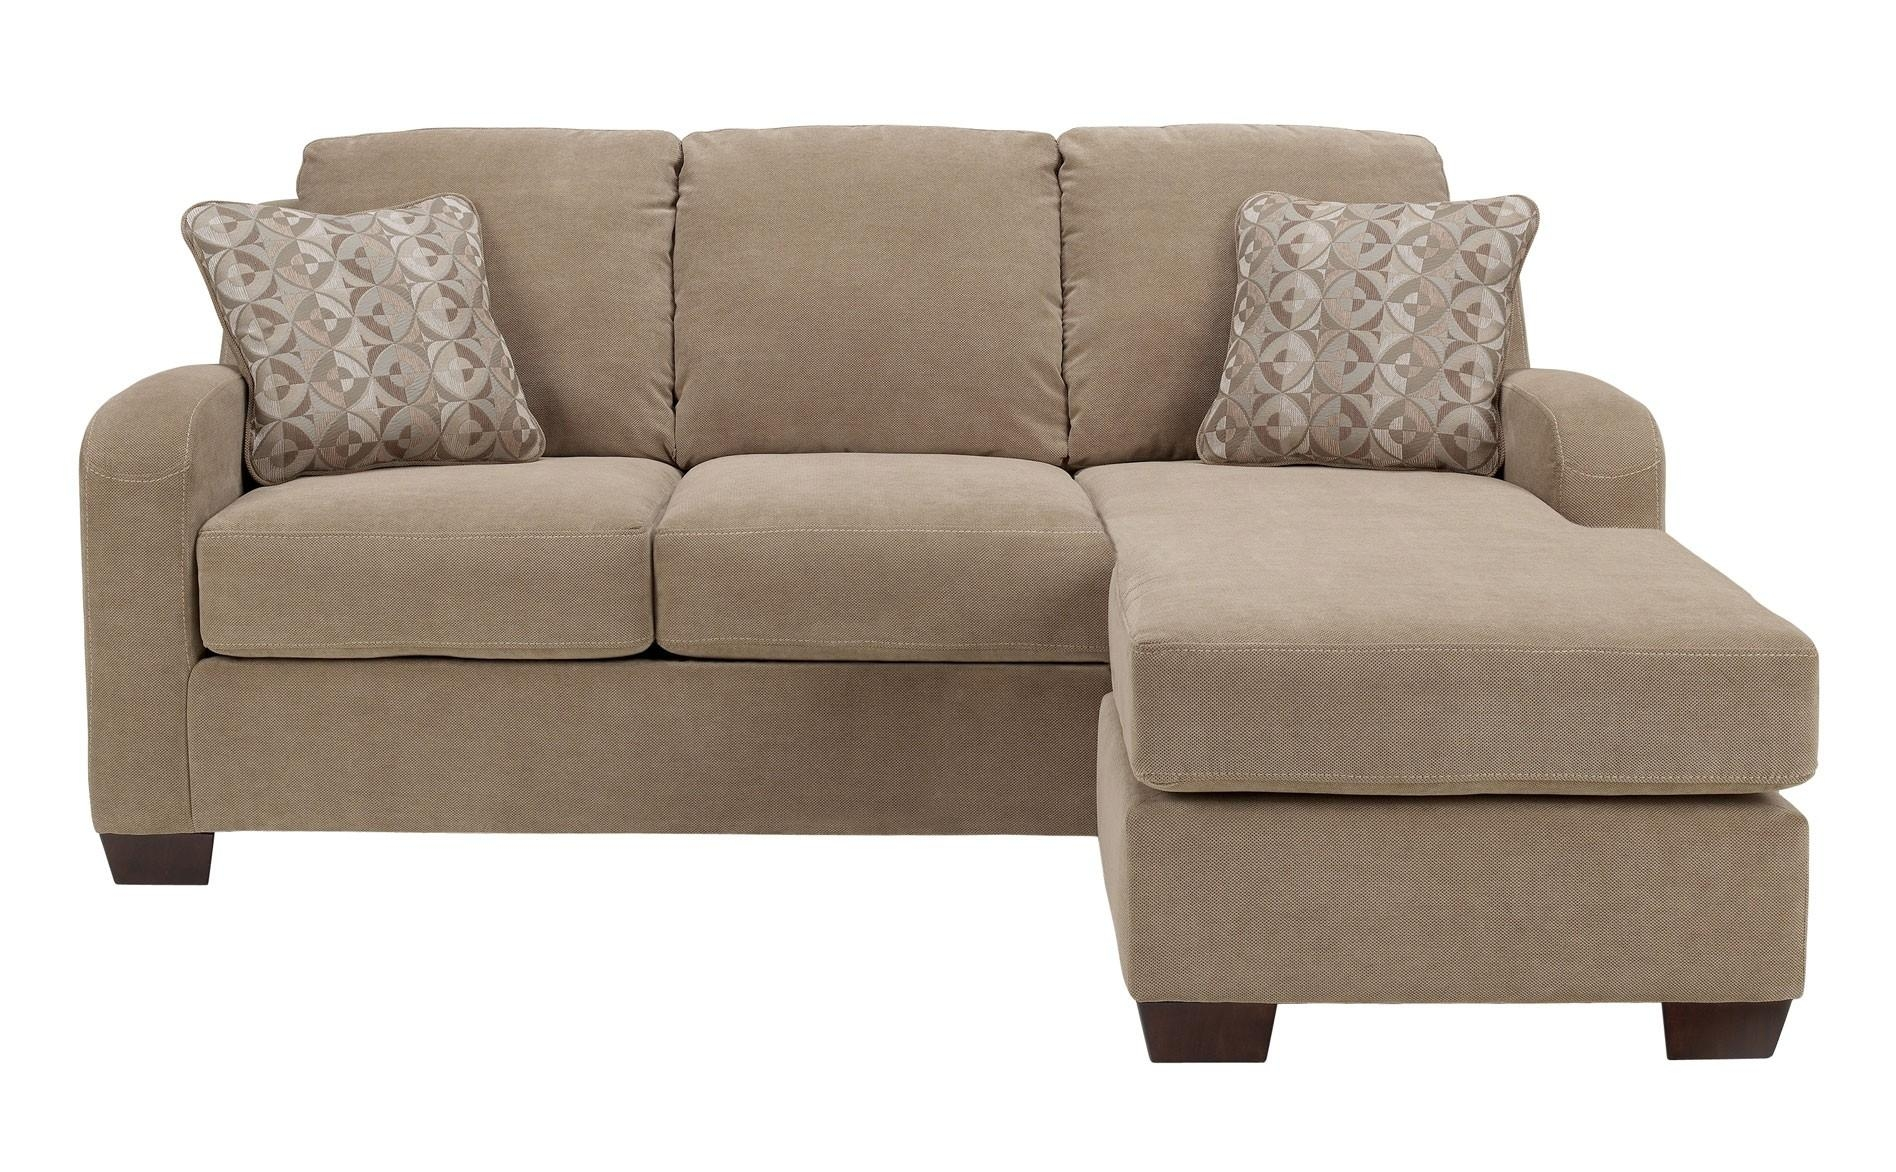 Chaise Sofa | Jitco Furniture In Chaise Sofa Chairs (View 6 of 20)